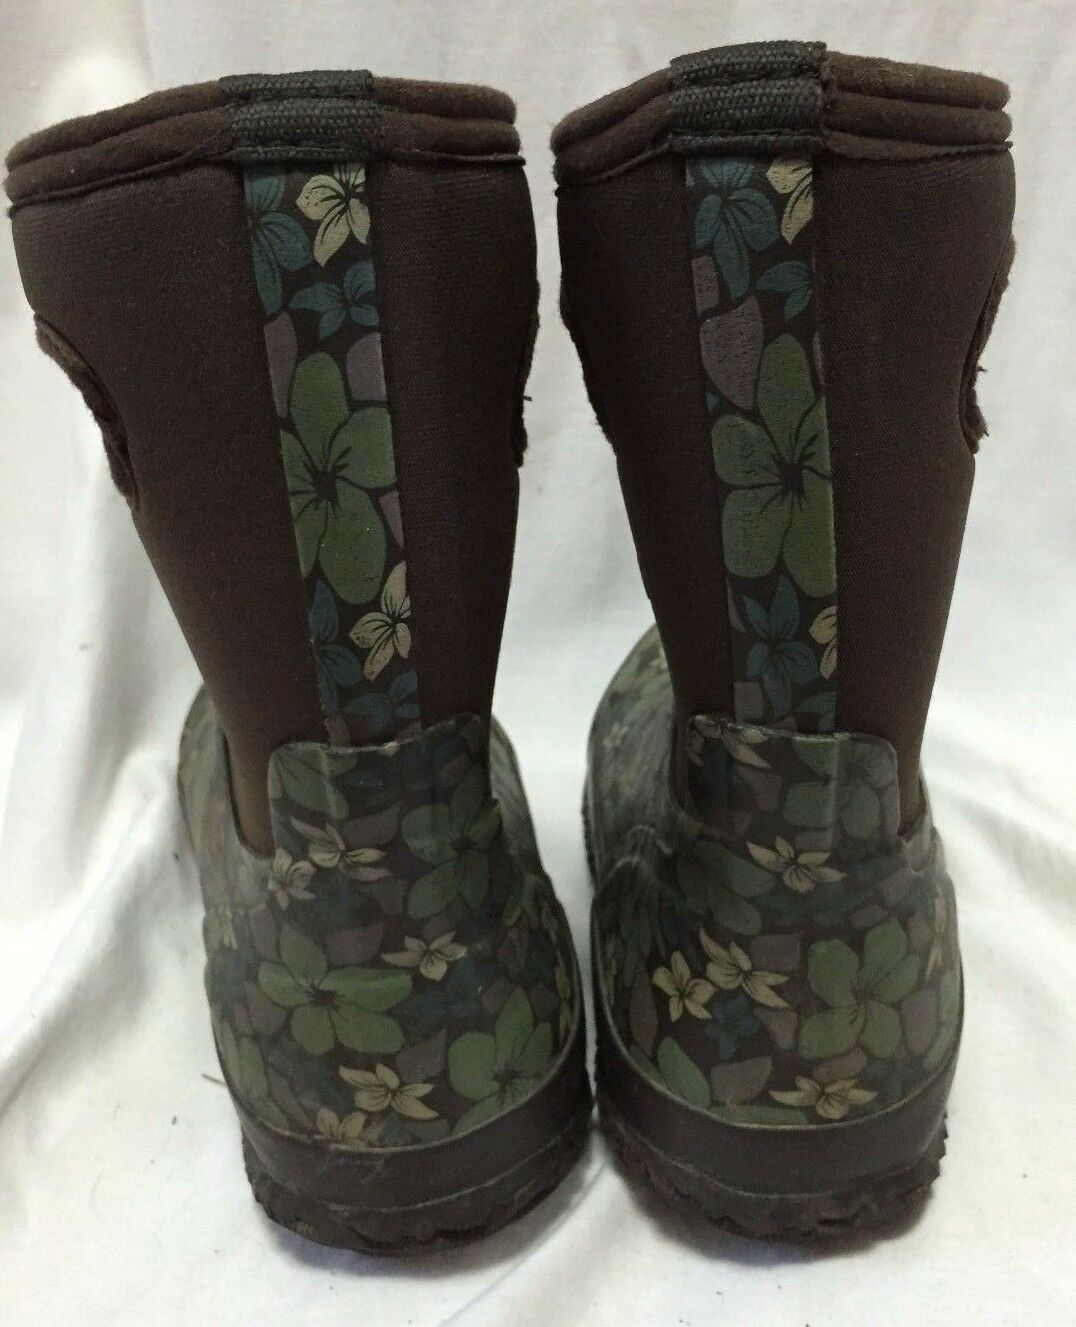 Bogs 6 Snow Rain Boots Women's 6 Bogs Brown Hibiscus Floral Waterproof Insulated Shoes a3162a